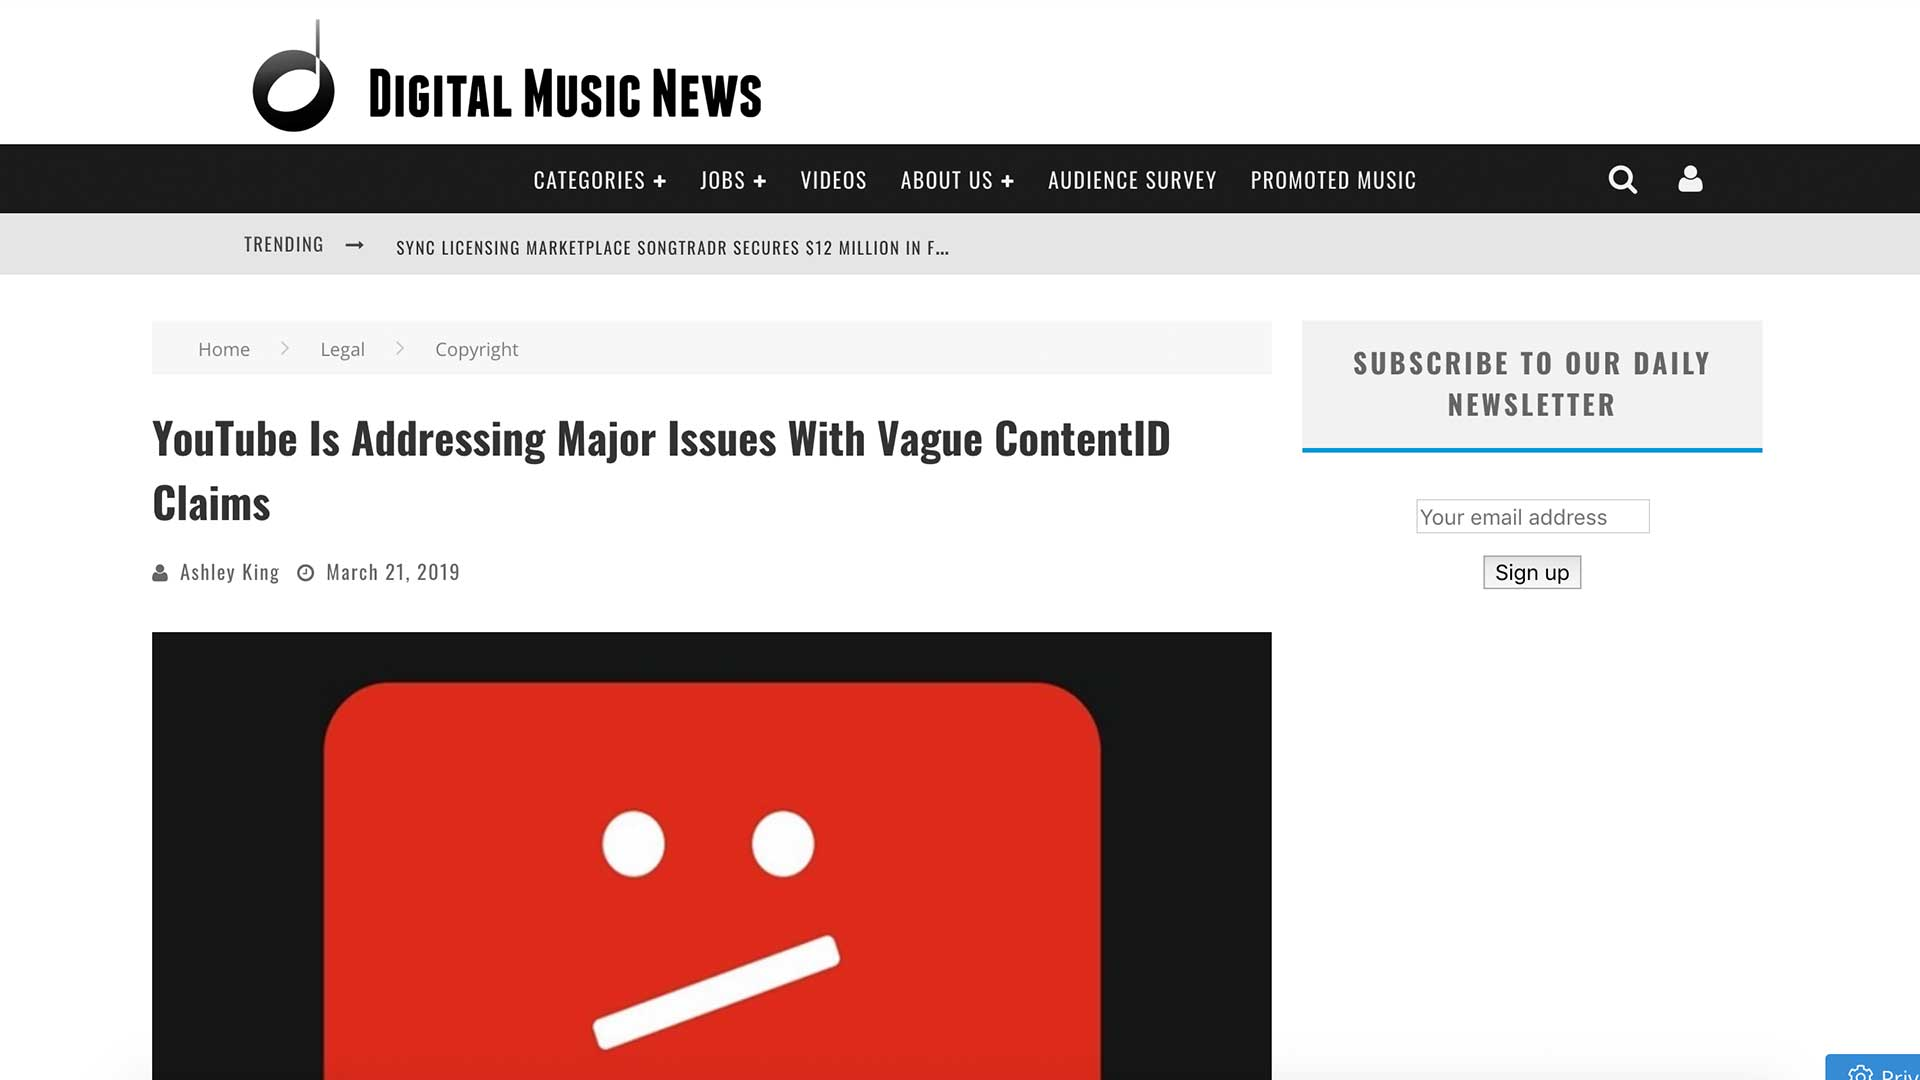 Fairness Rocks News YouTube Is Addressing Major Issues With Vague ContentID Claims